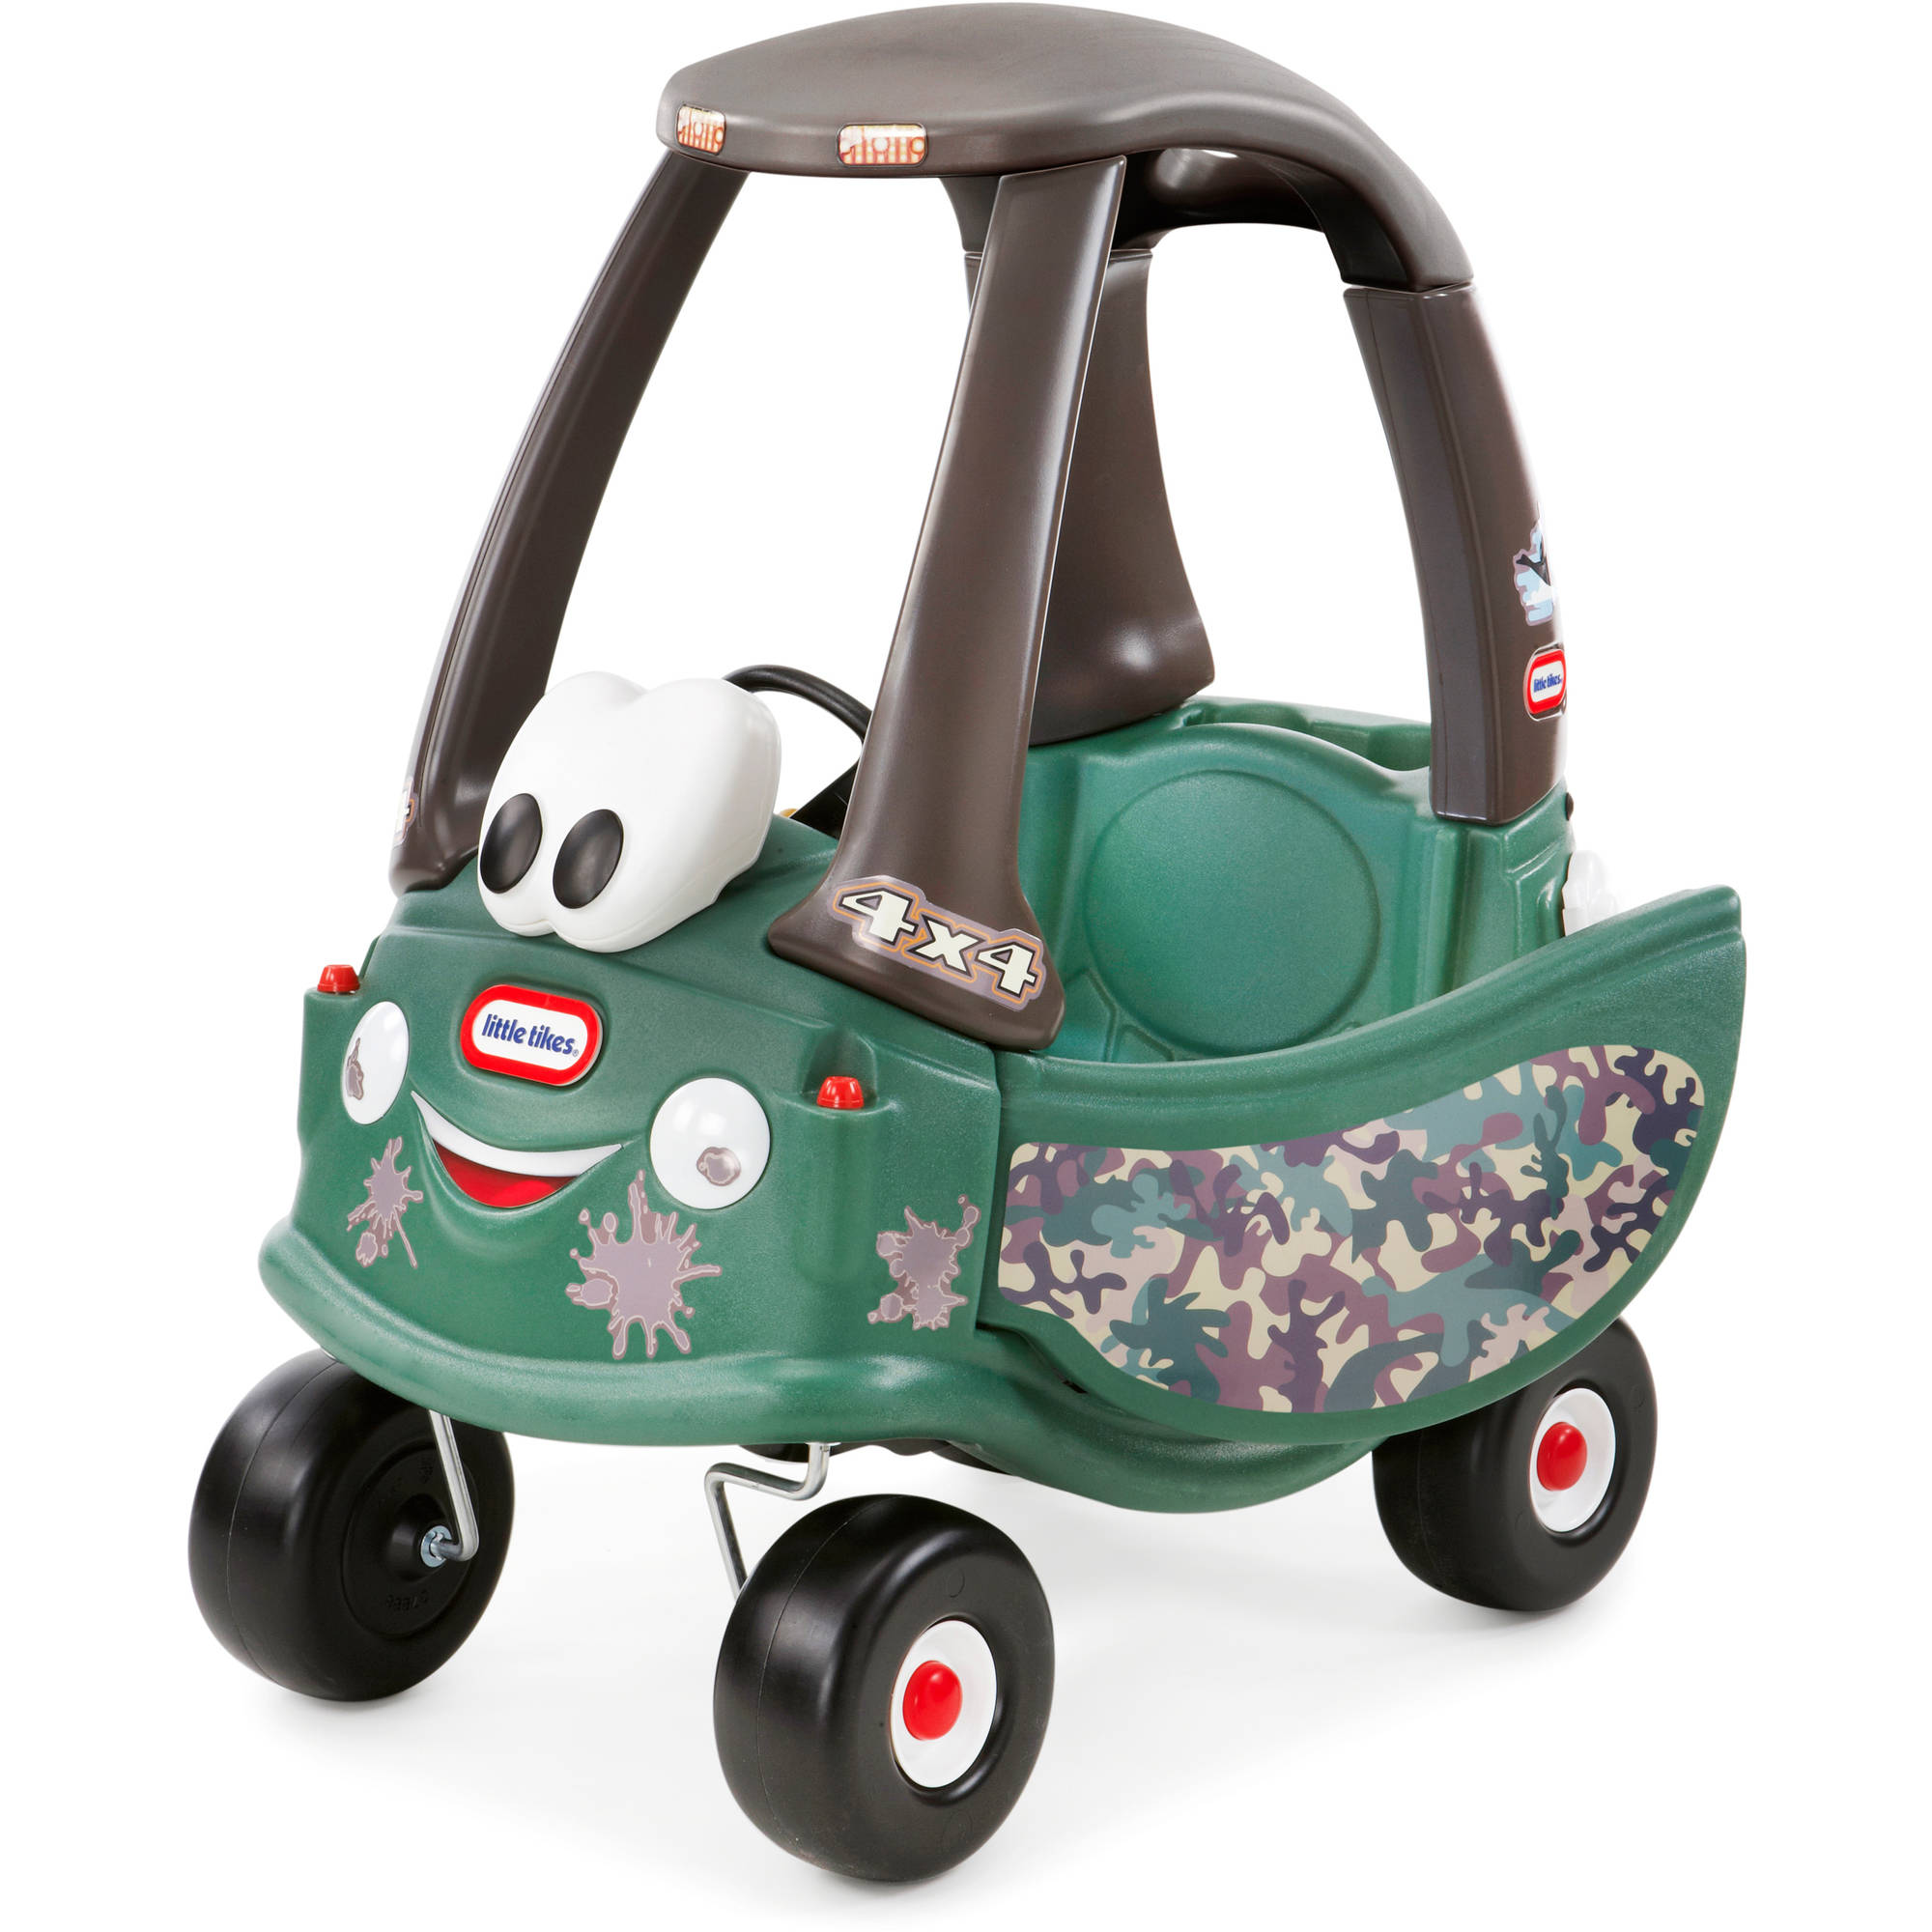 Walmart.com: Little Tikes Cozy Coupe Off-Roader Ride-On only $48.50 on